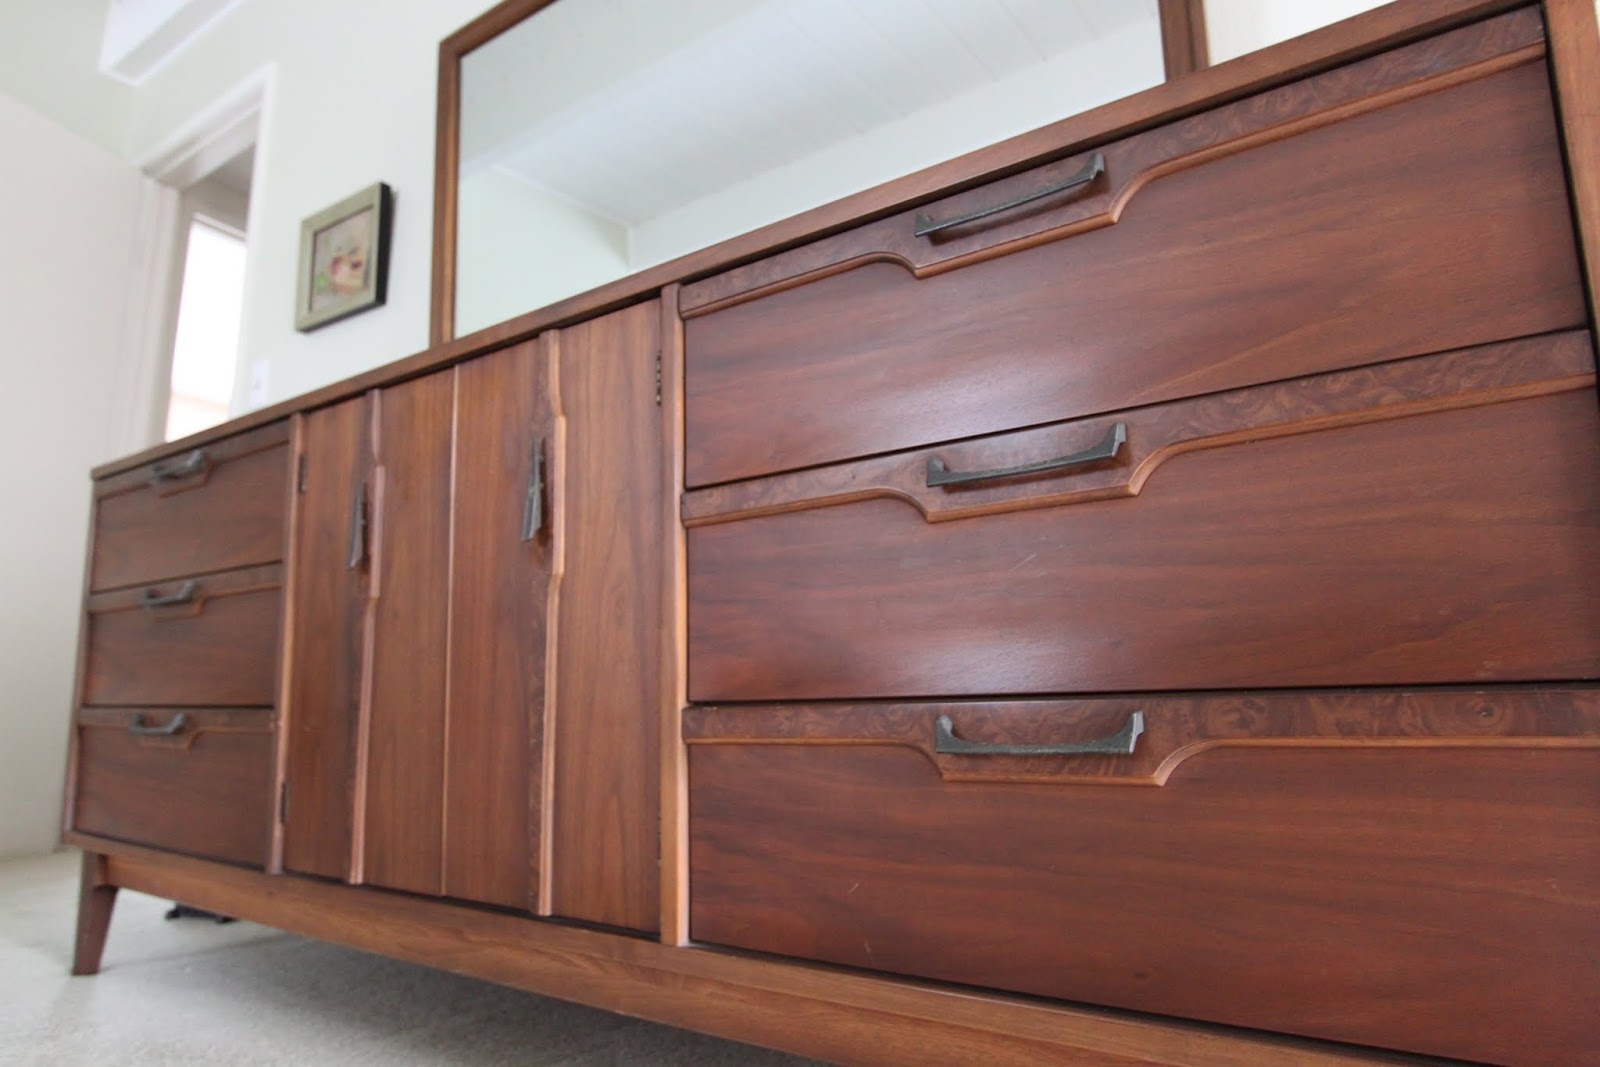 Awesome Brown Wooden Dresser With Dark Handle And Mirror By Broyhill Furniture For Home Furniture Ideas